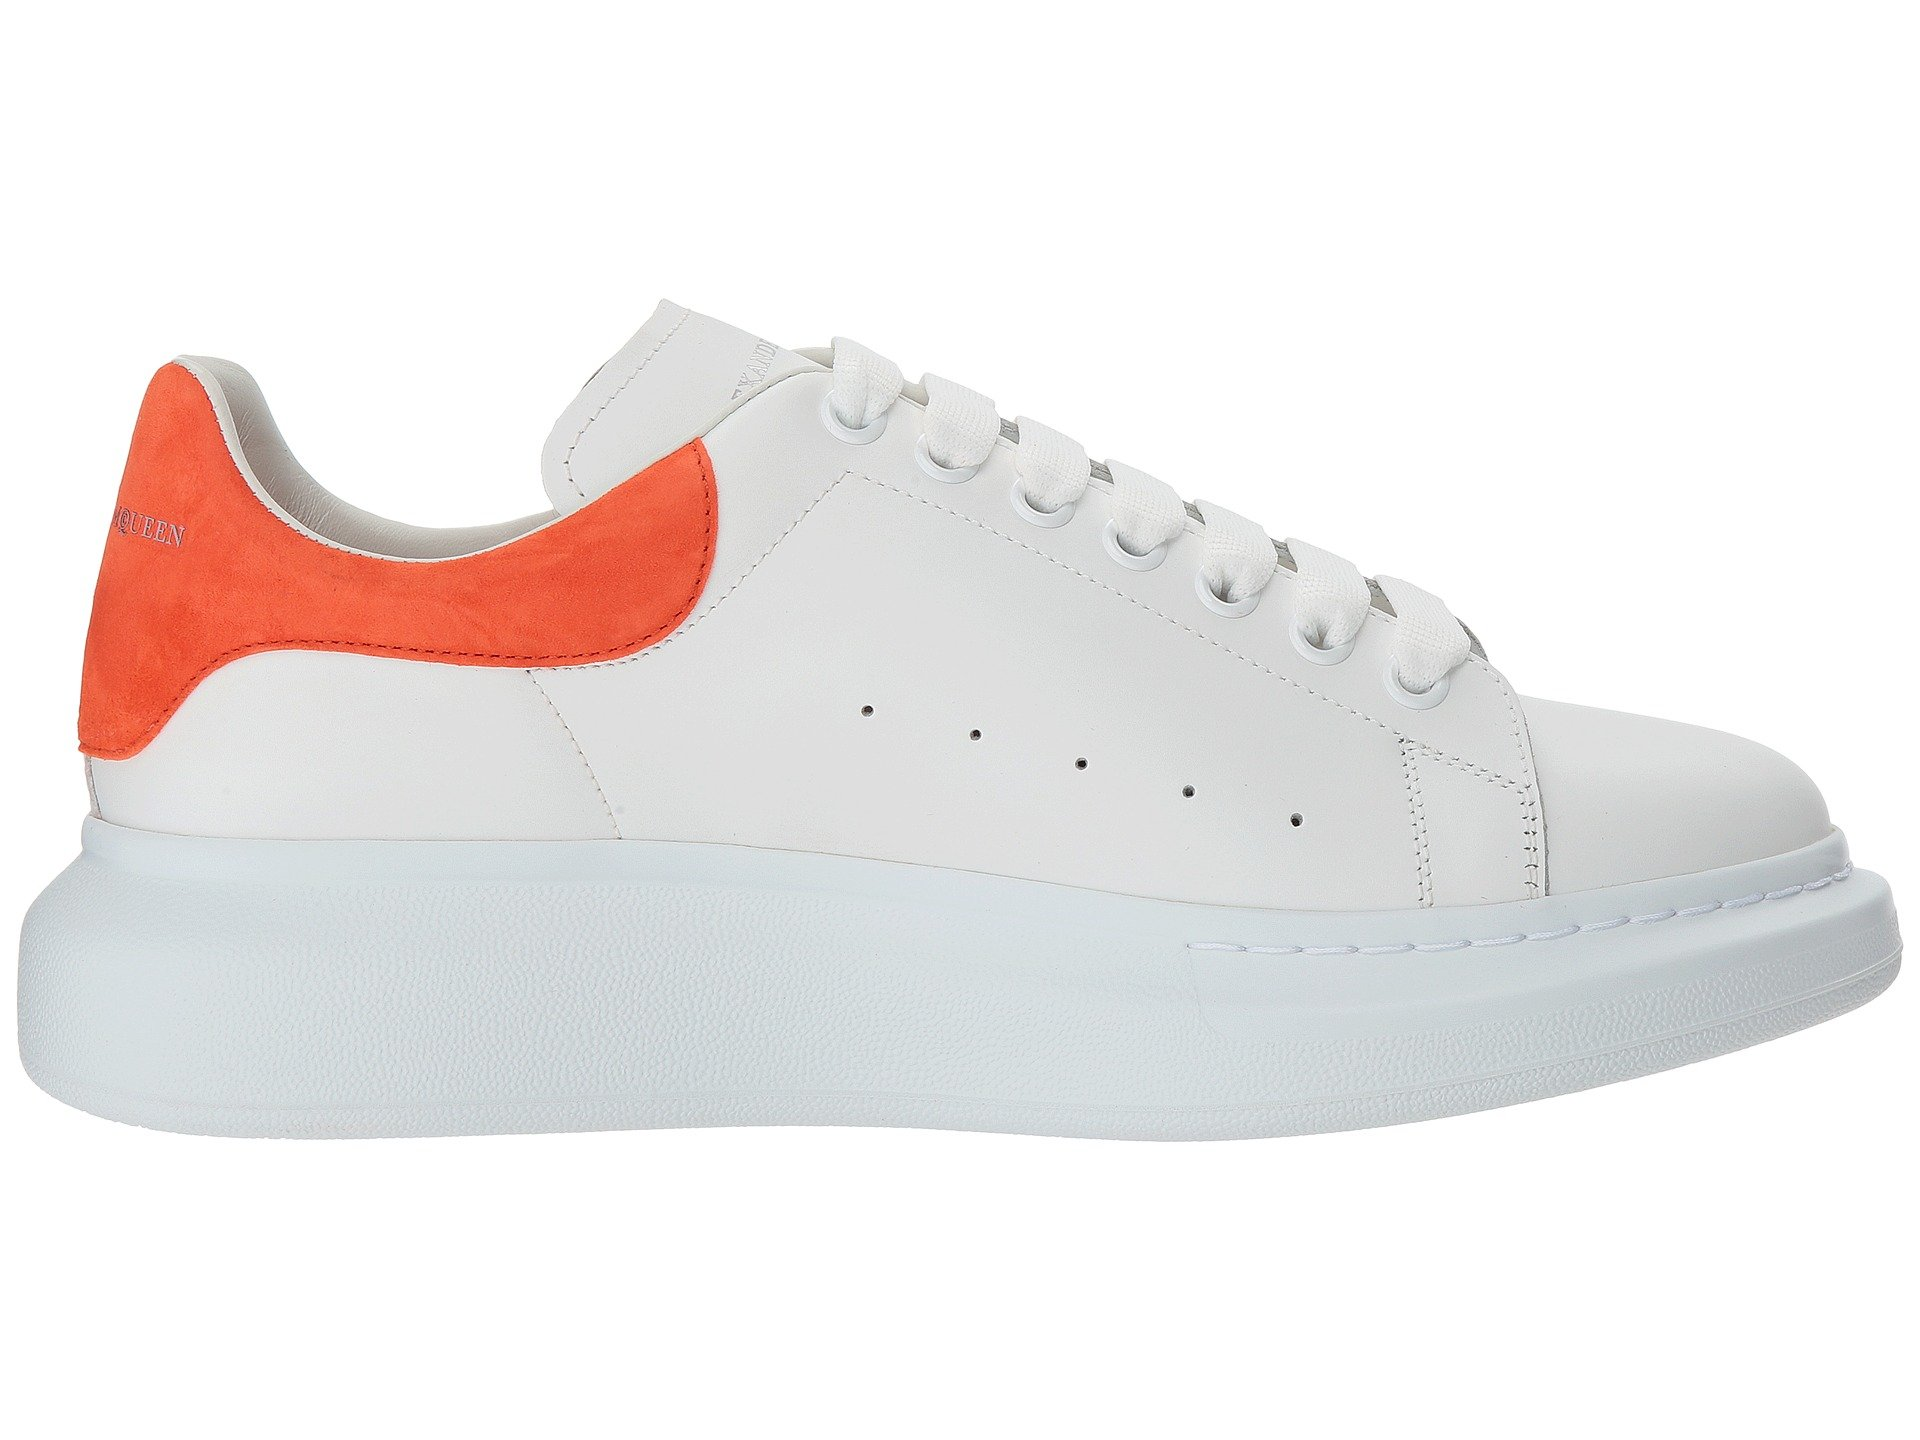 30742e44f3 Alexander McQueen Double Sole Sneaker at Luxury.Zappos.com